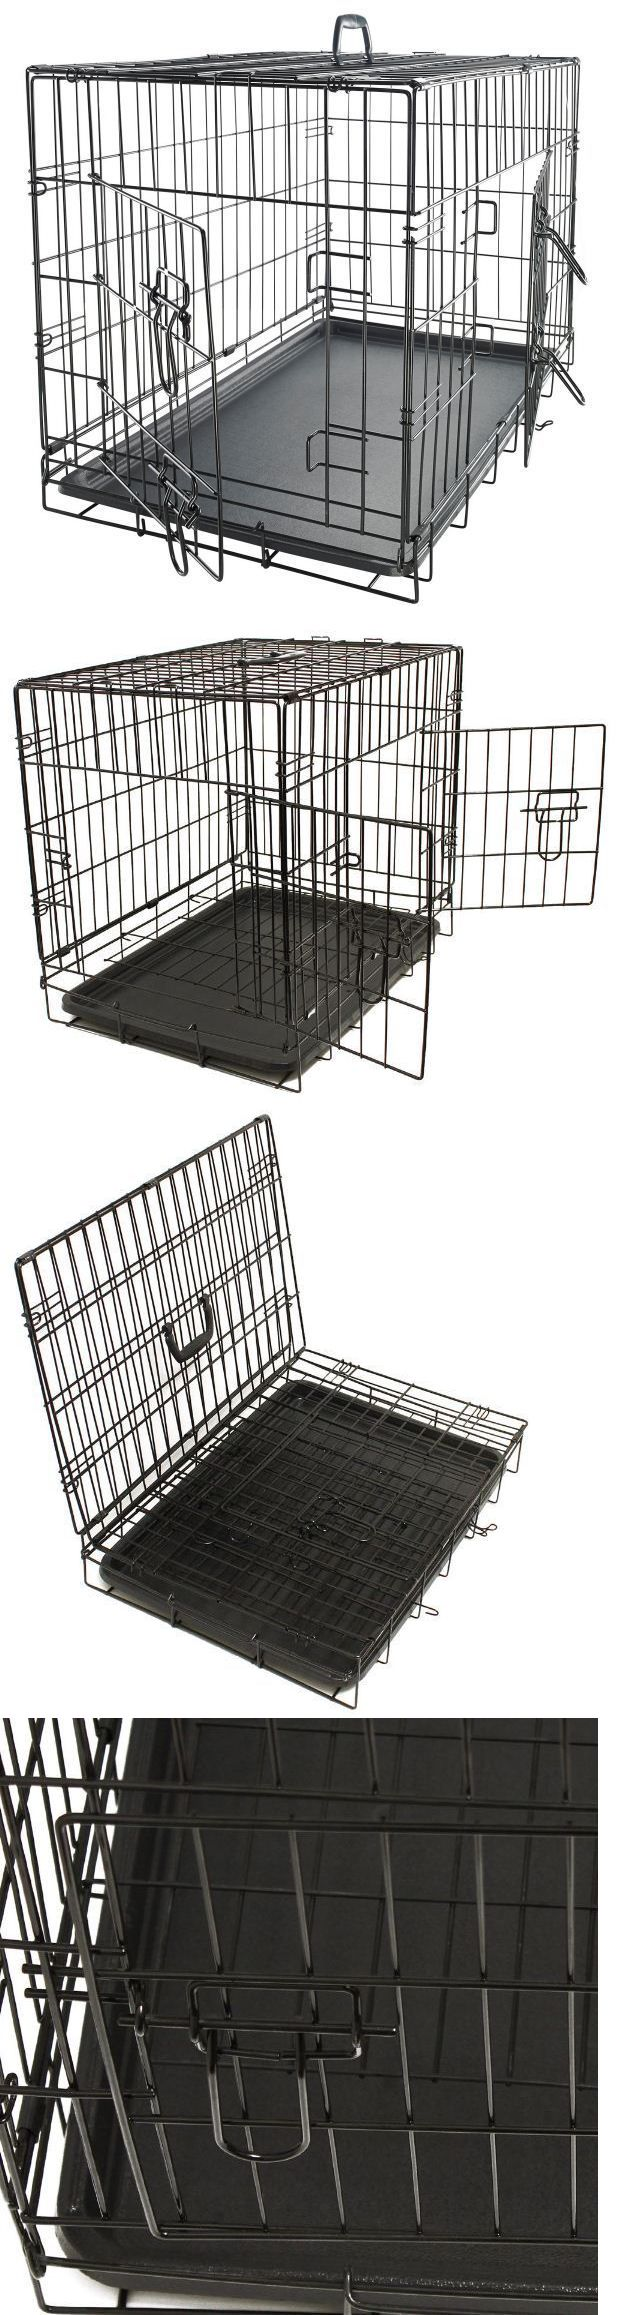 Cages and Crates 121851: Xxl Dog Crate Kennel Chew Resistant Extra Large 48 Inch Black Cage Pet Training BUY IT NOW ONLY: $76.68